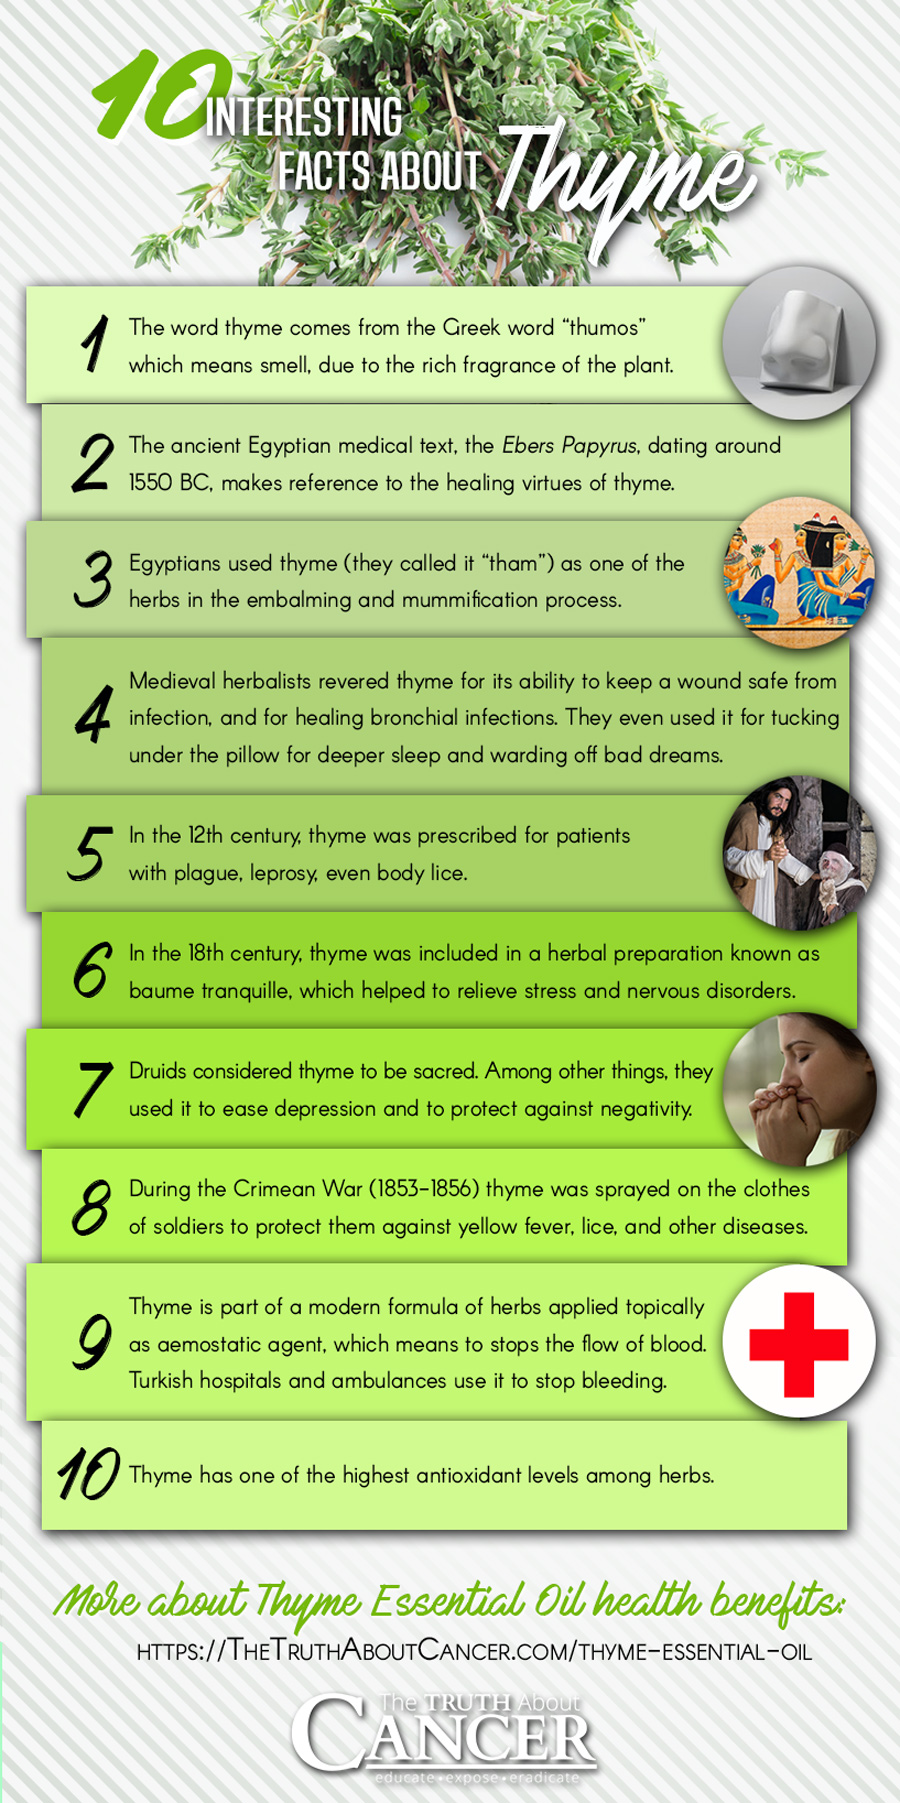 Here are 10 interesting Thyme facts - by The Truth About Cancer // to learn more about the amazing health benefits of Thyme Essential Oils, click on the image above.